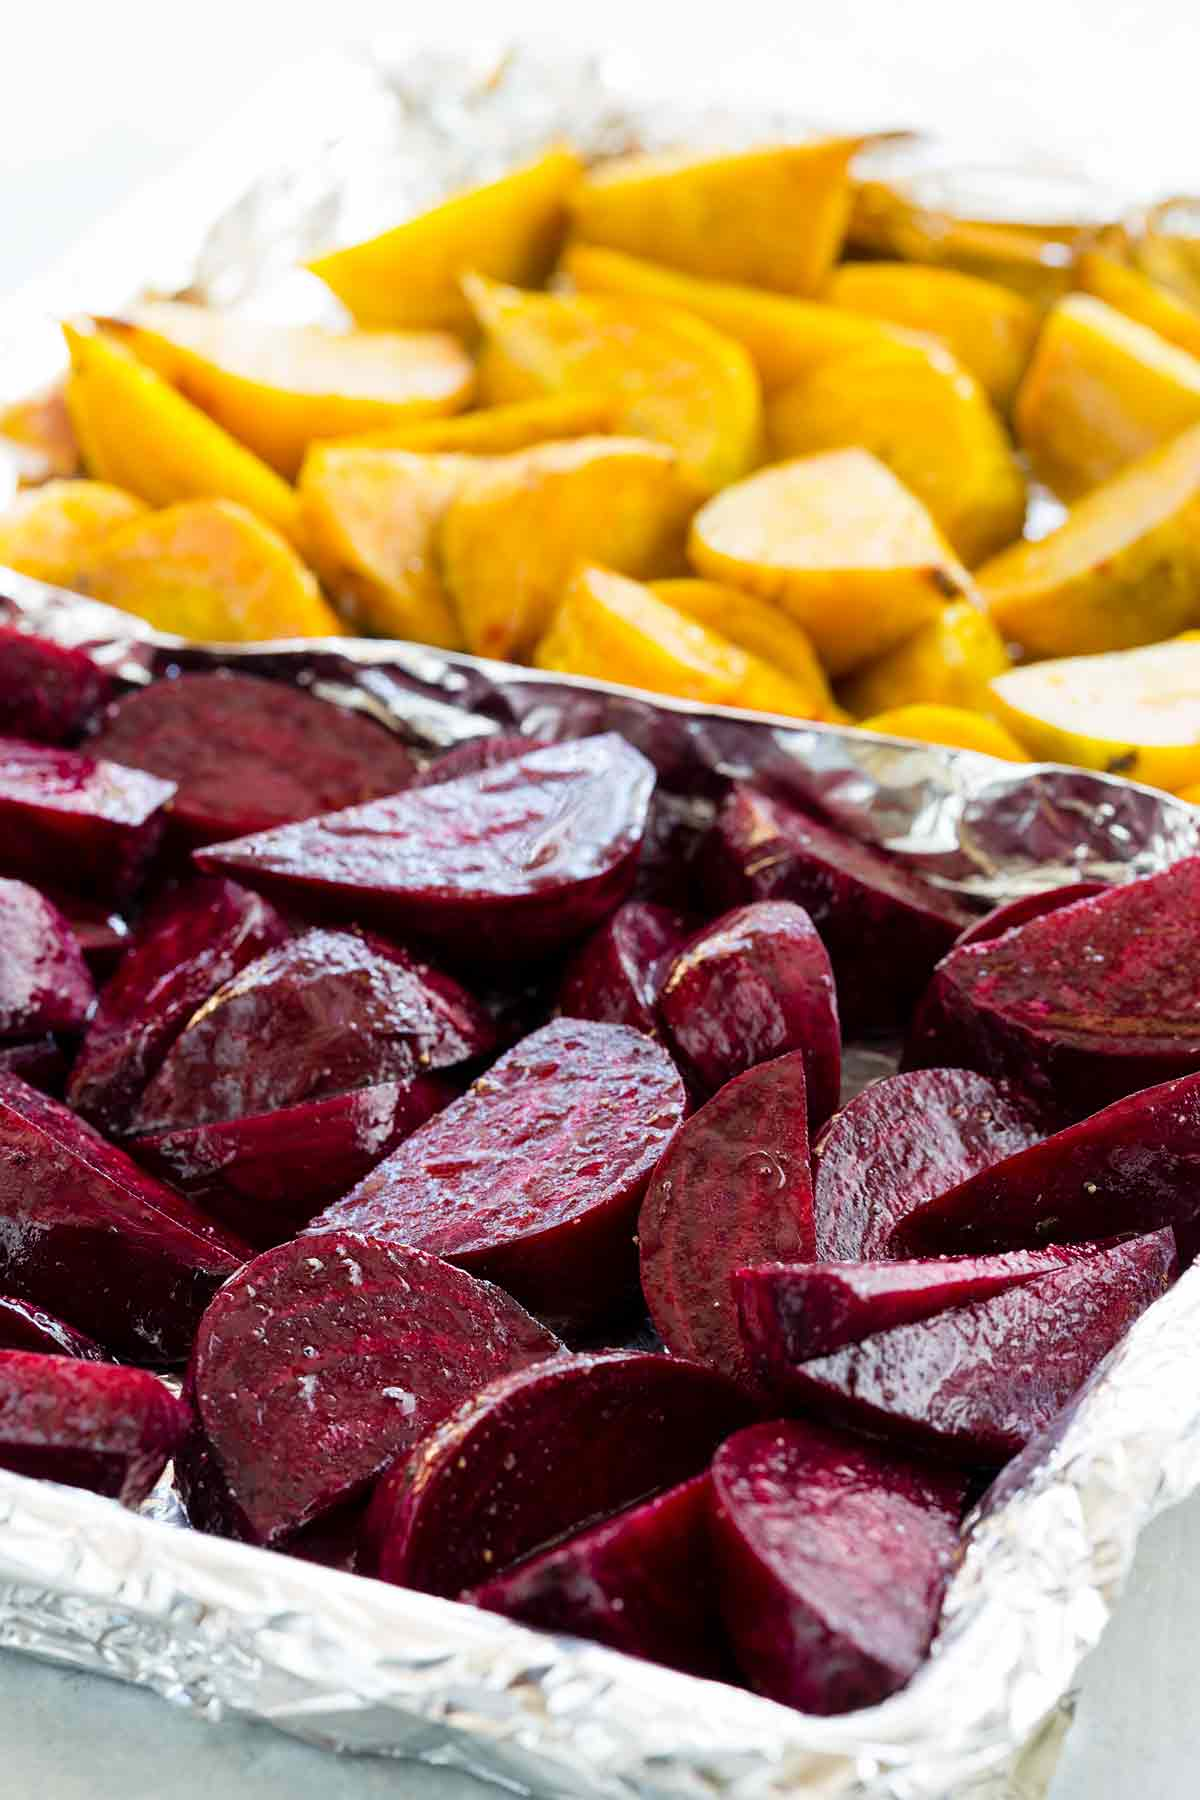 Sliced purple and gold beets on a roasting pan